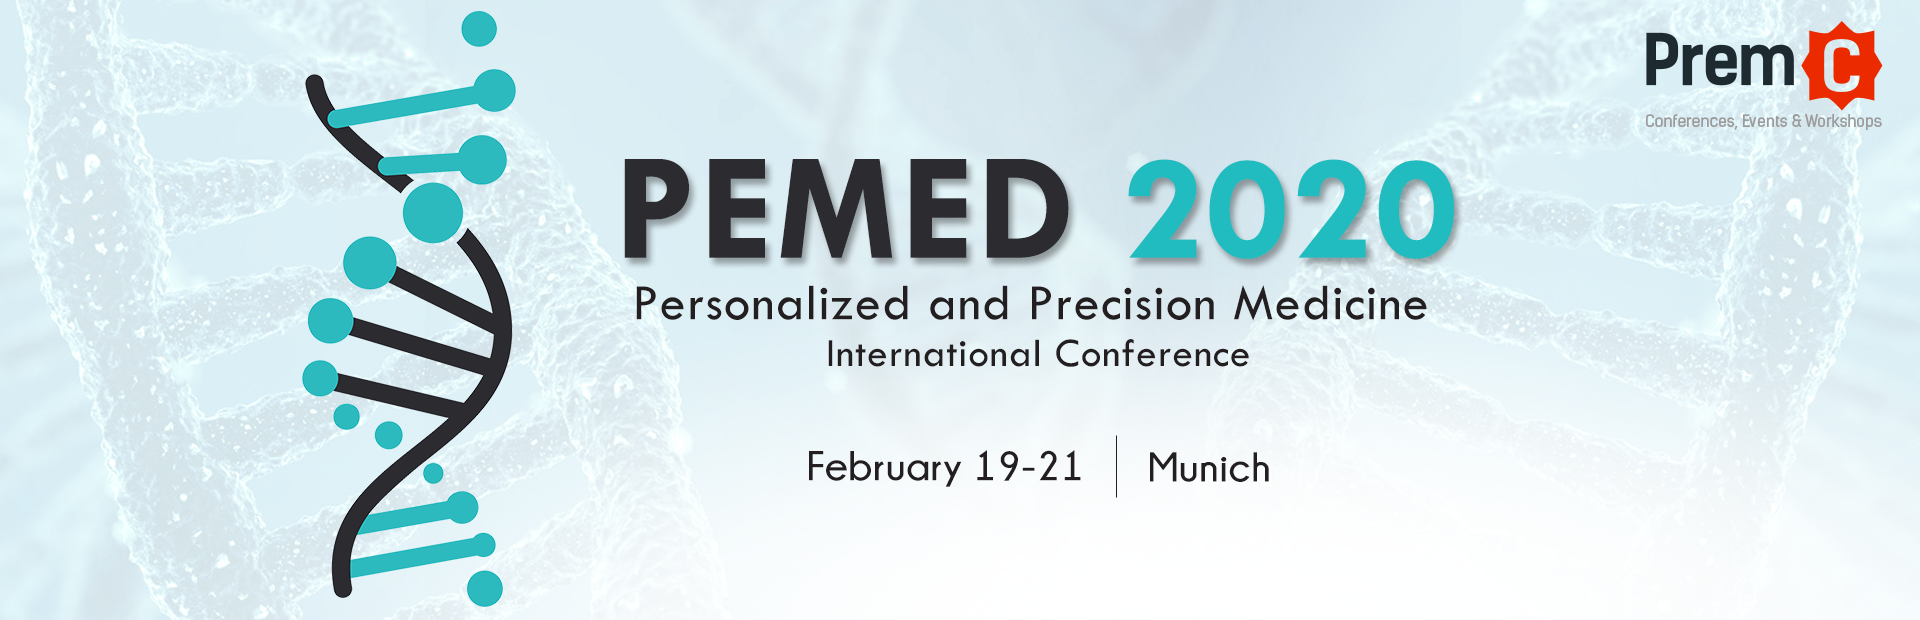 Personalized and Precision Medicine International Conference